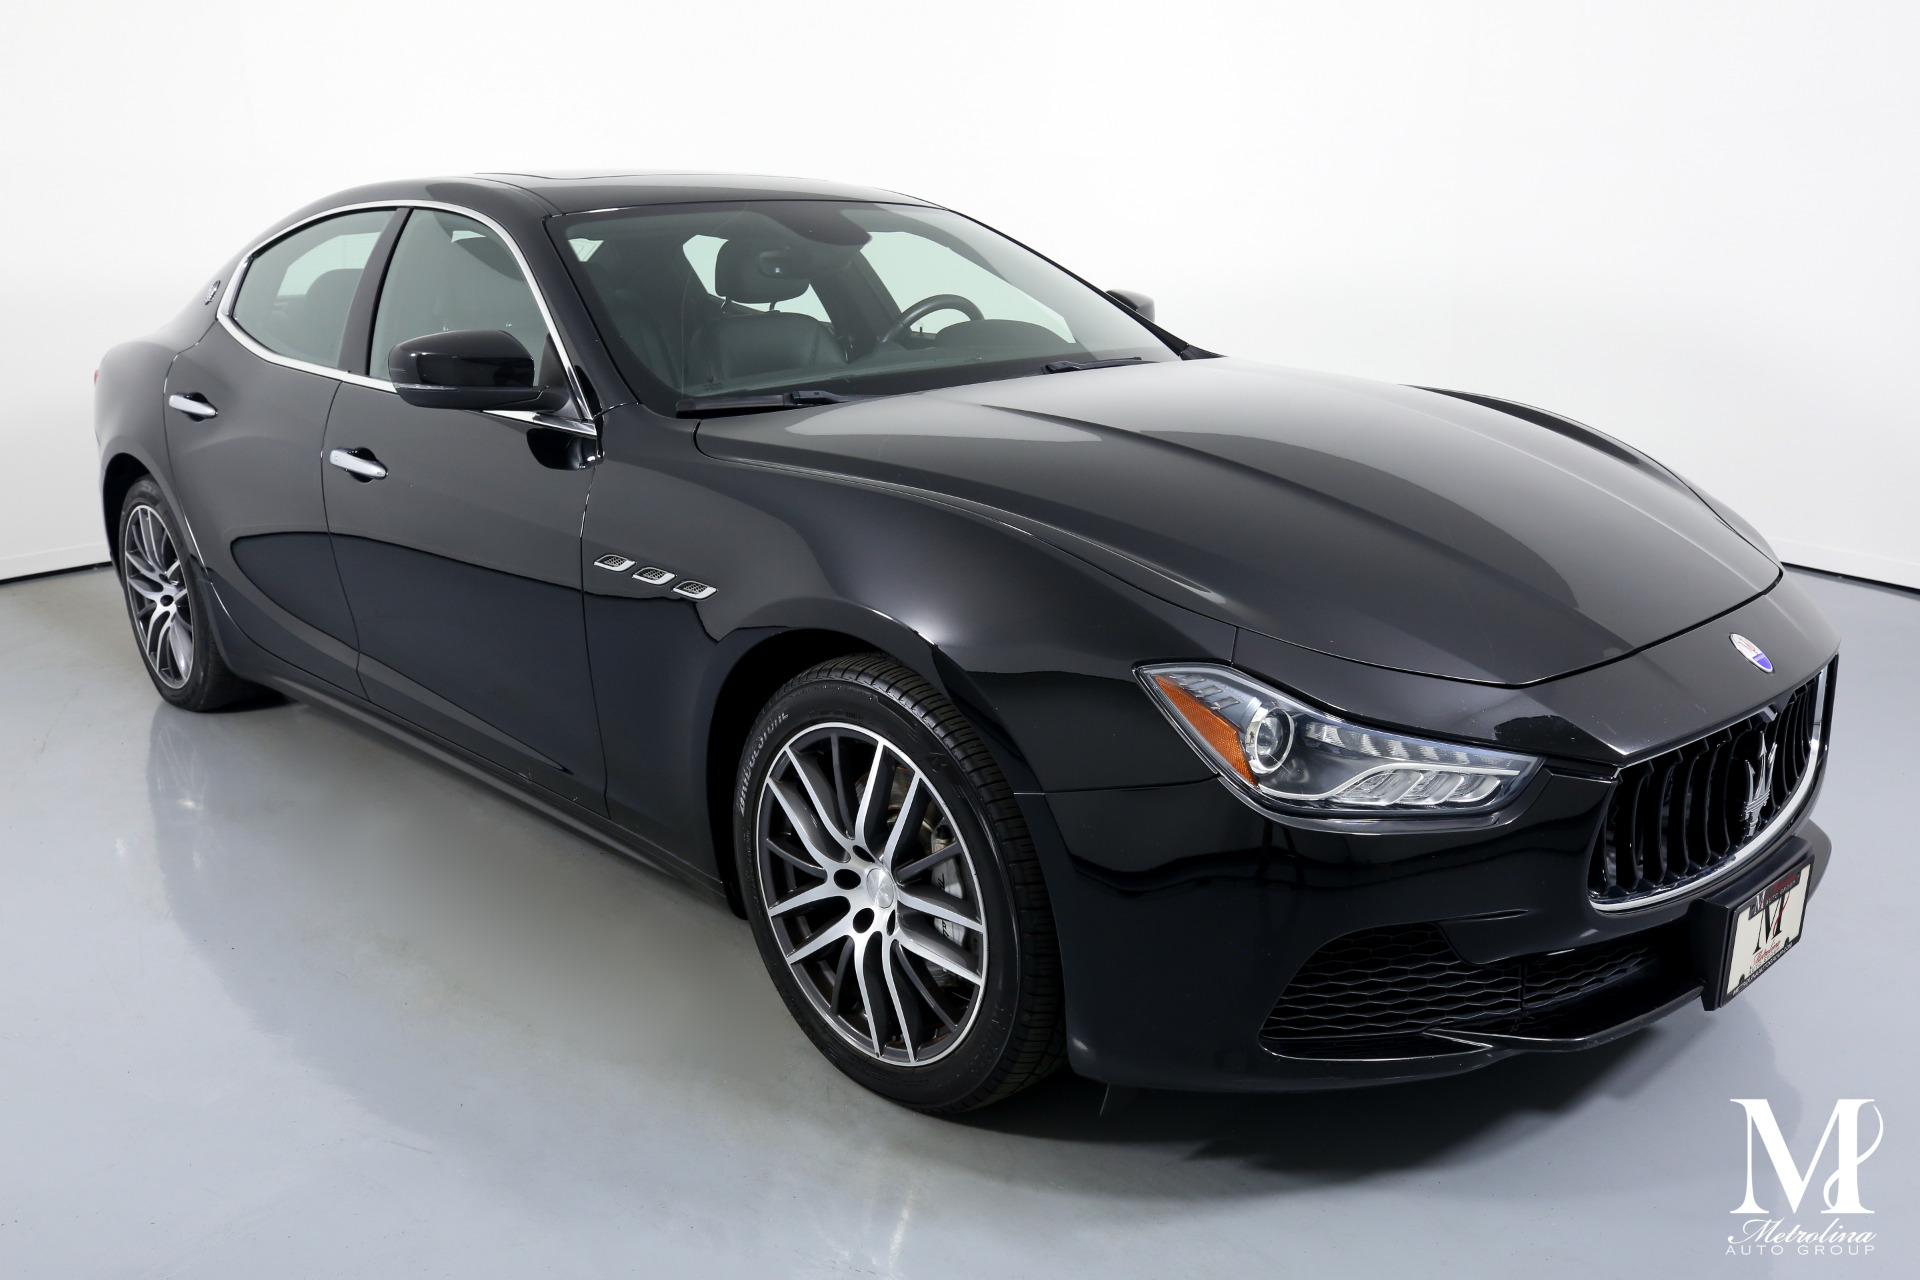 Used 2017 Maserati Ghibli Base 4dr Sedan for sale Sold at Metrolina Auto Group in Charlotte NC 28217 - 2